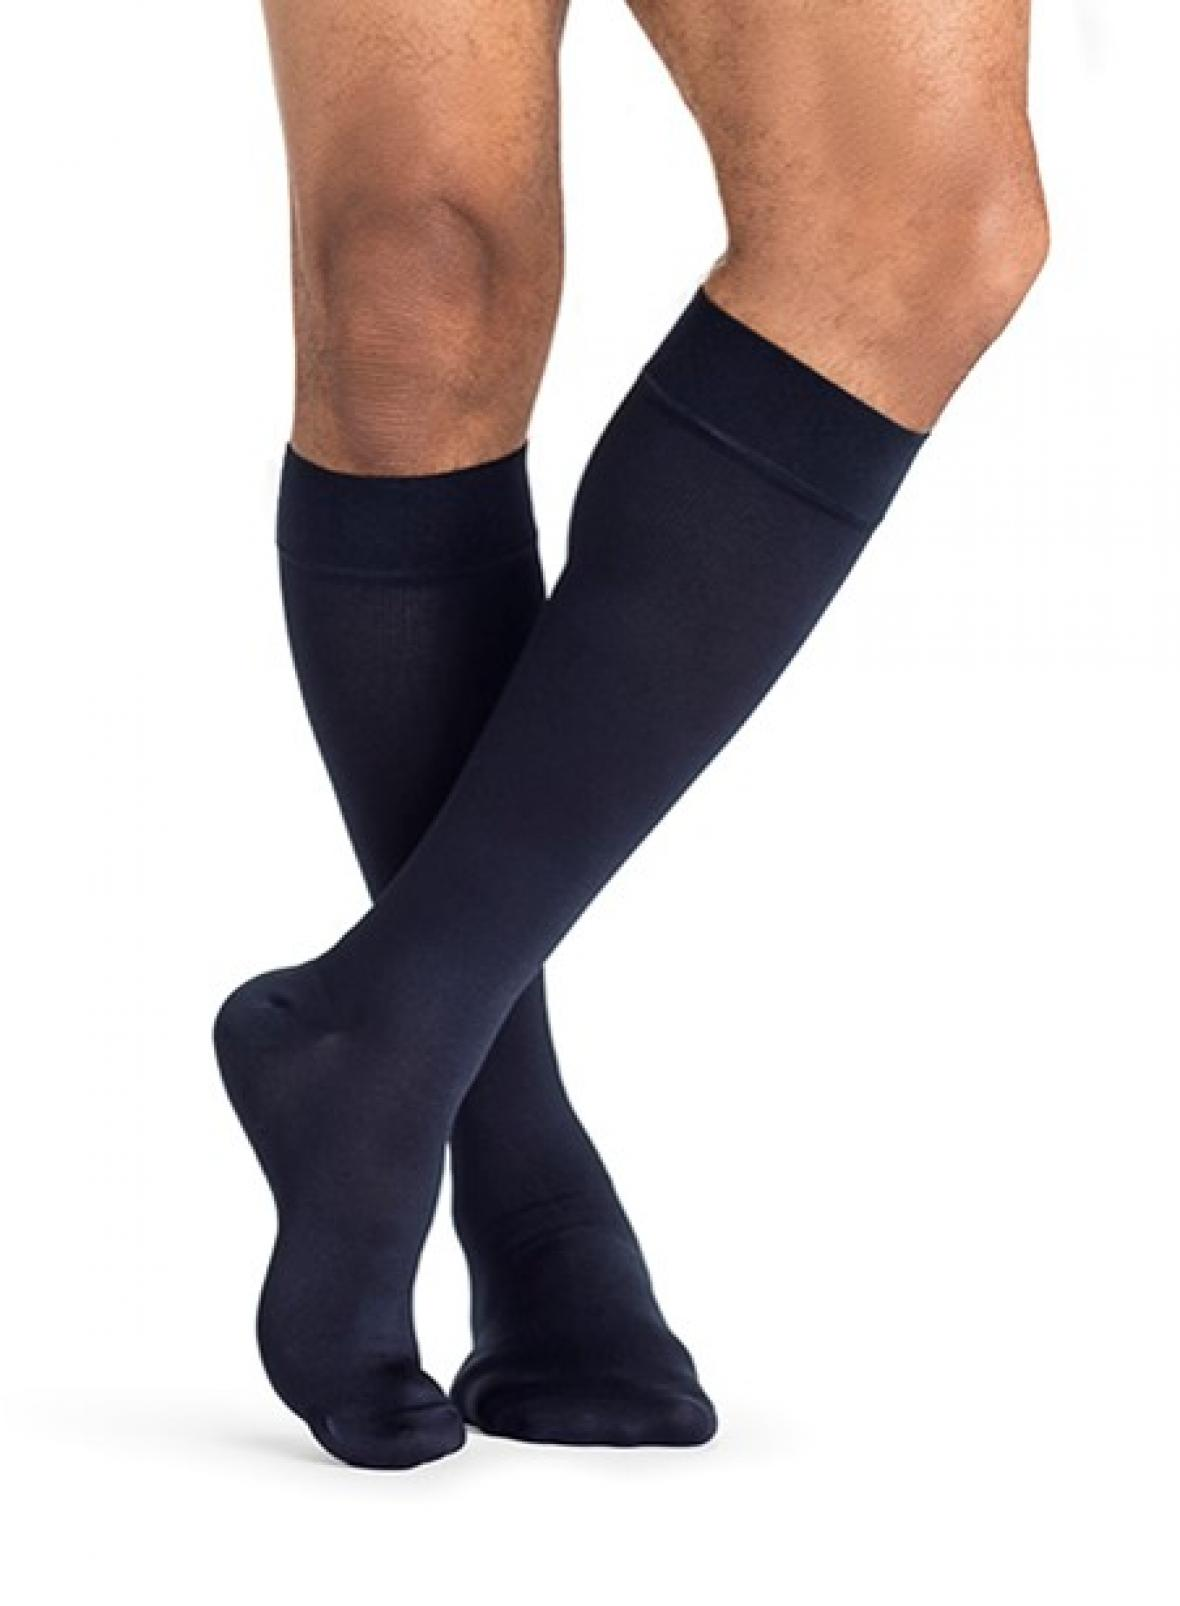 SIGVARIS' Popular Men's Line, MIDTOWN MICROFIBER, Now Available in Navy Compression Socks